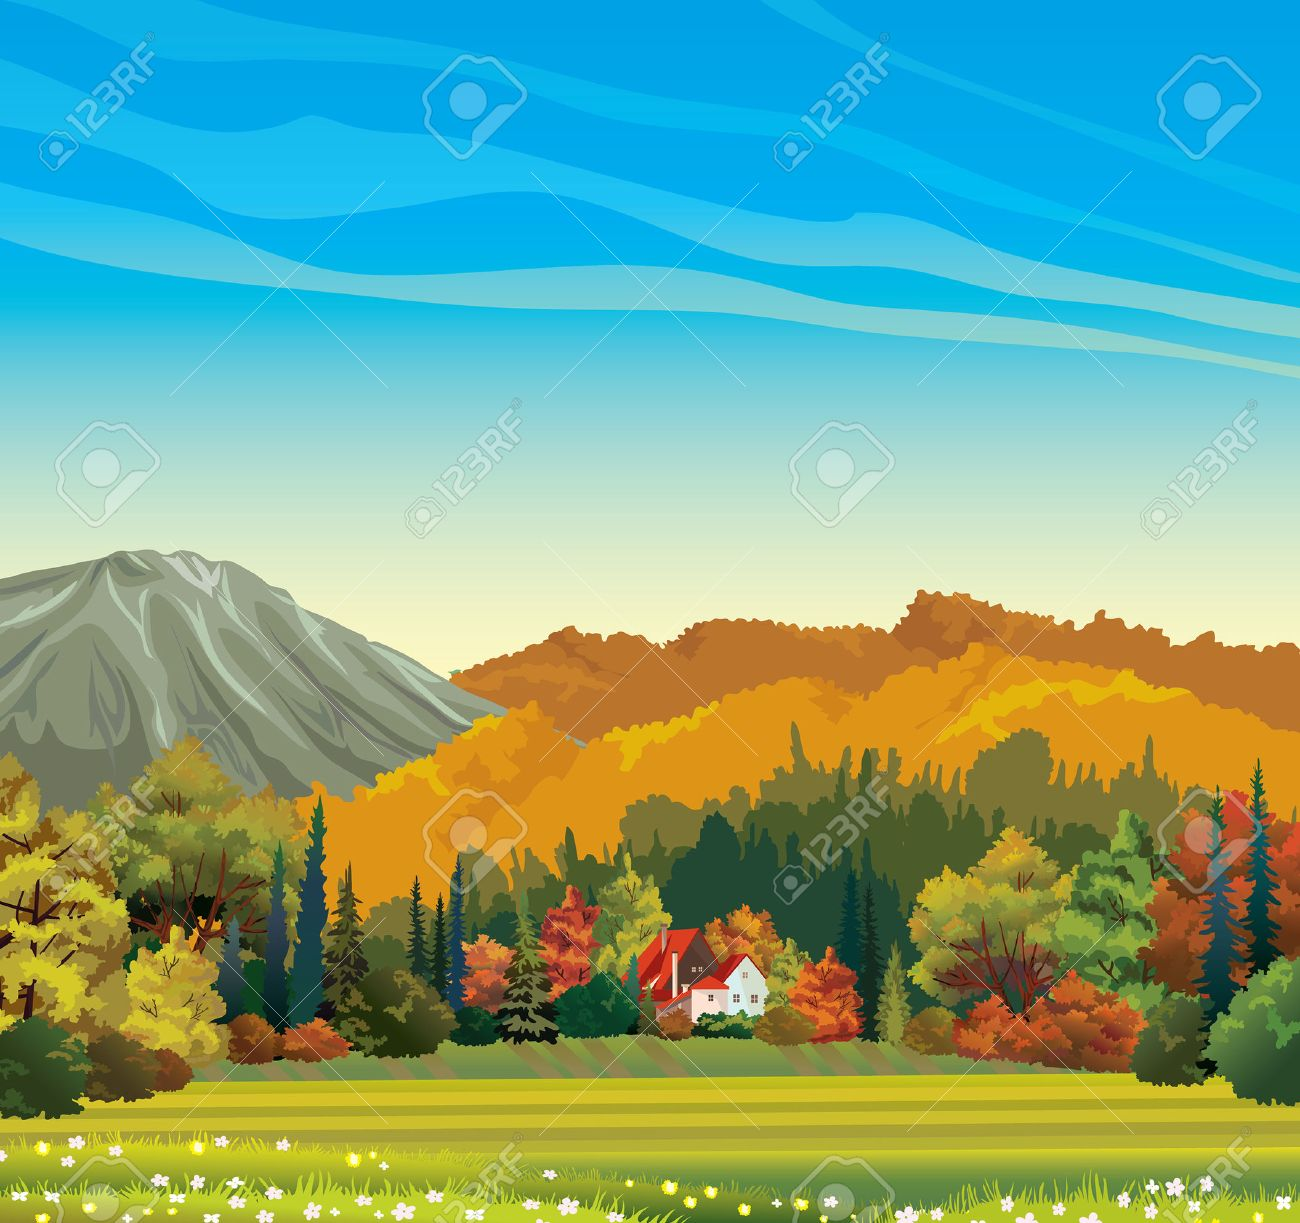 Nature autumn landscape - orange forest and house with red roof on a blue sky background. - 31071916